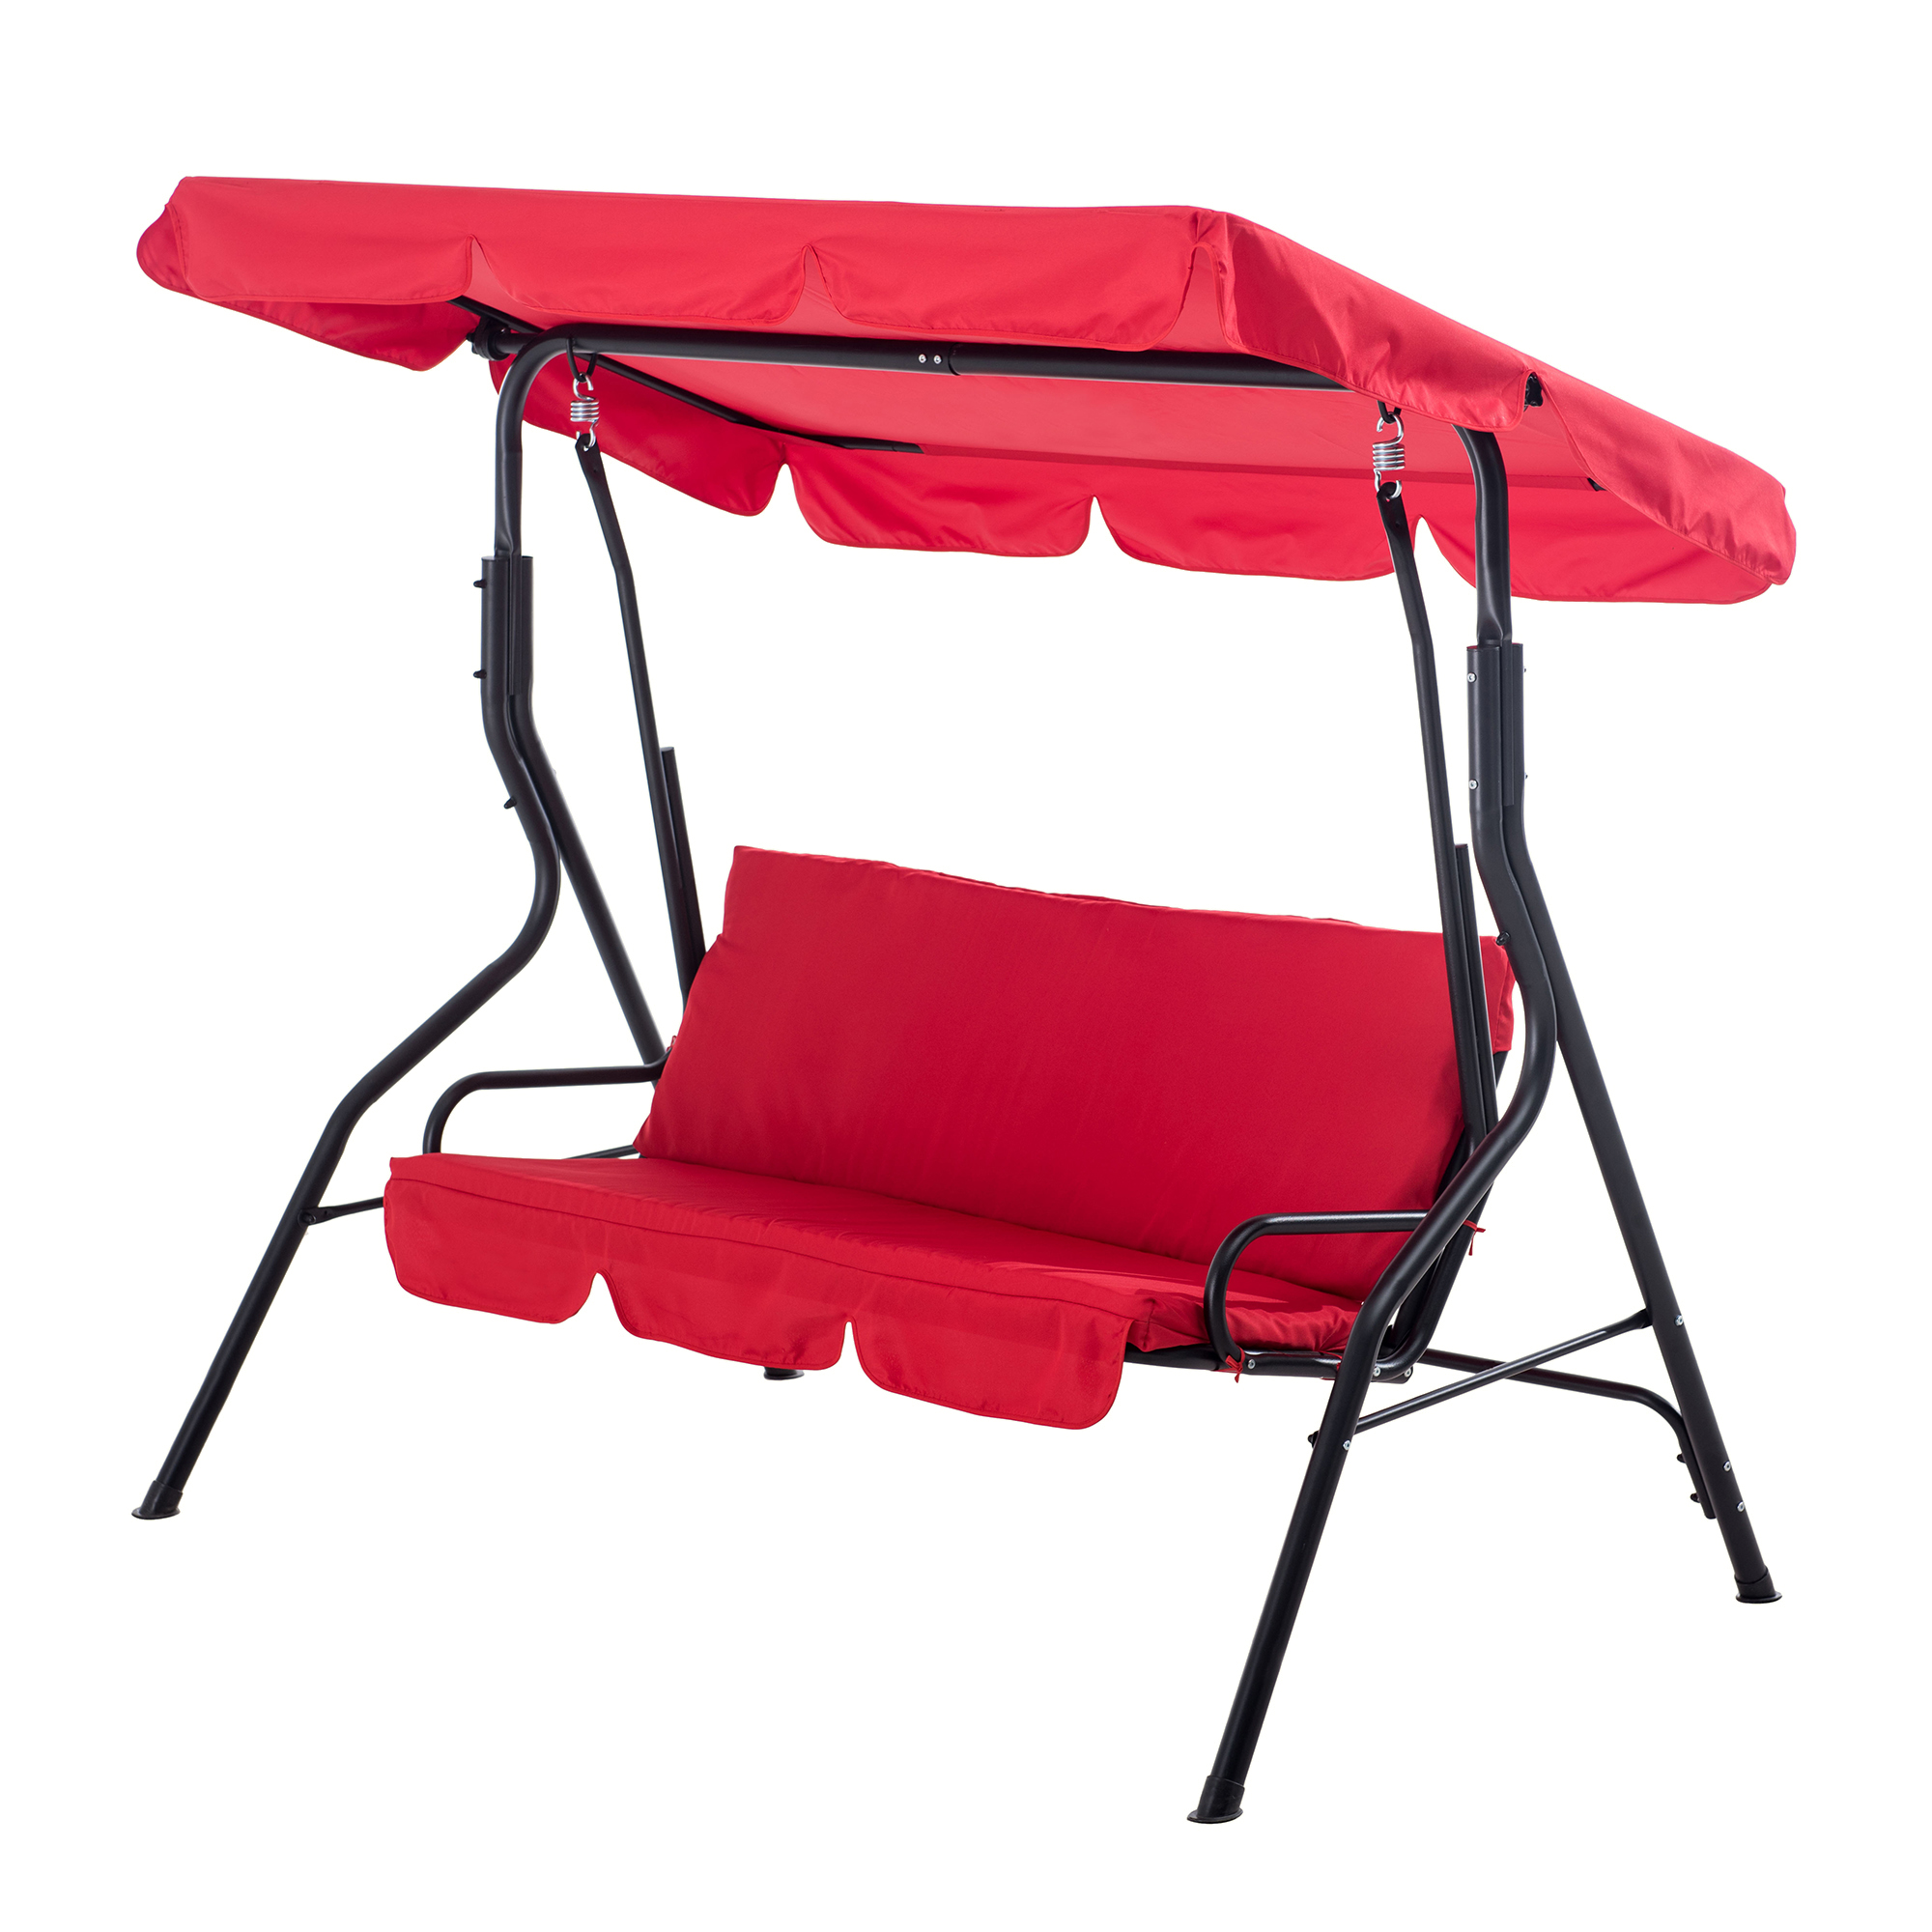 sunjoy erikson porch swing chair for patio deck outdoor bench swing set red